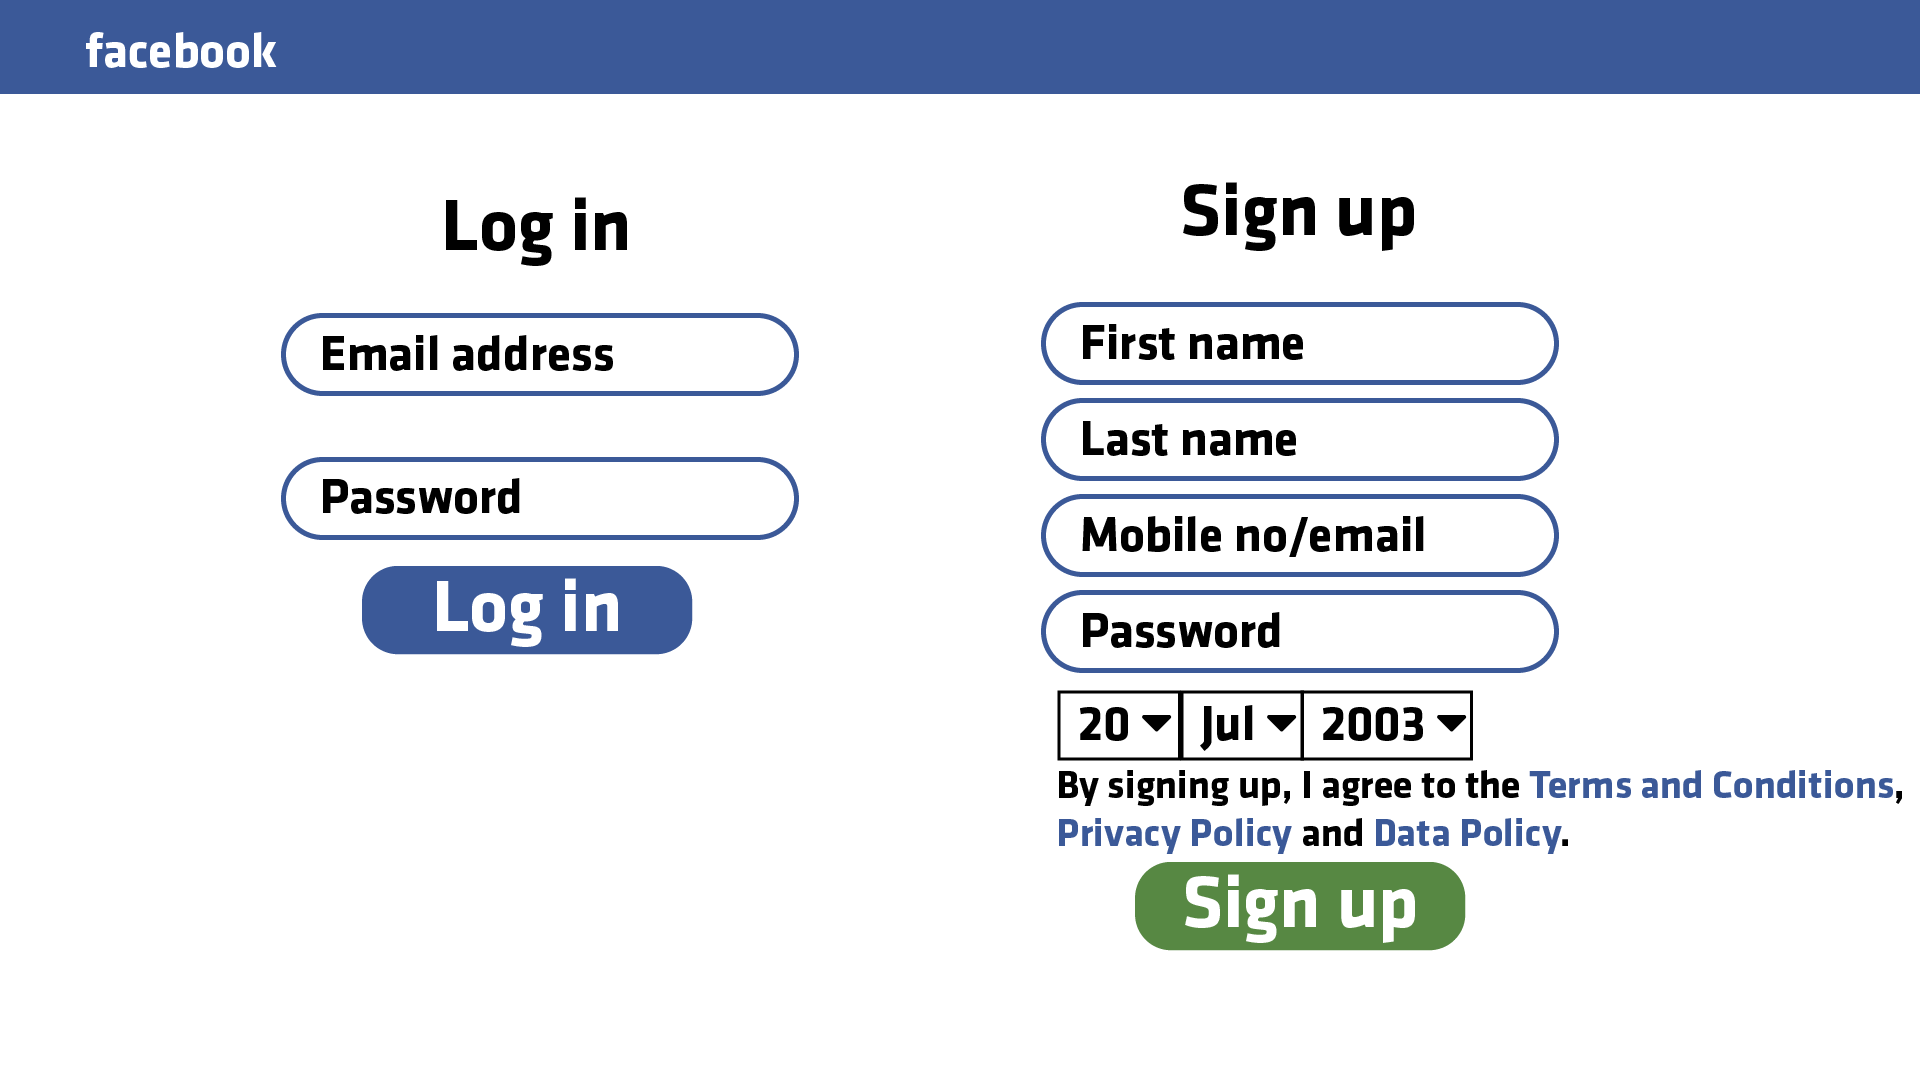 The Facebook login page